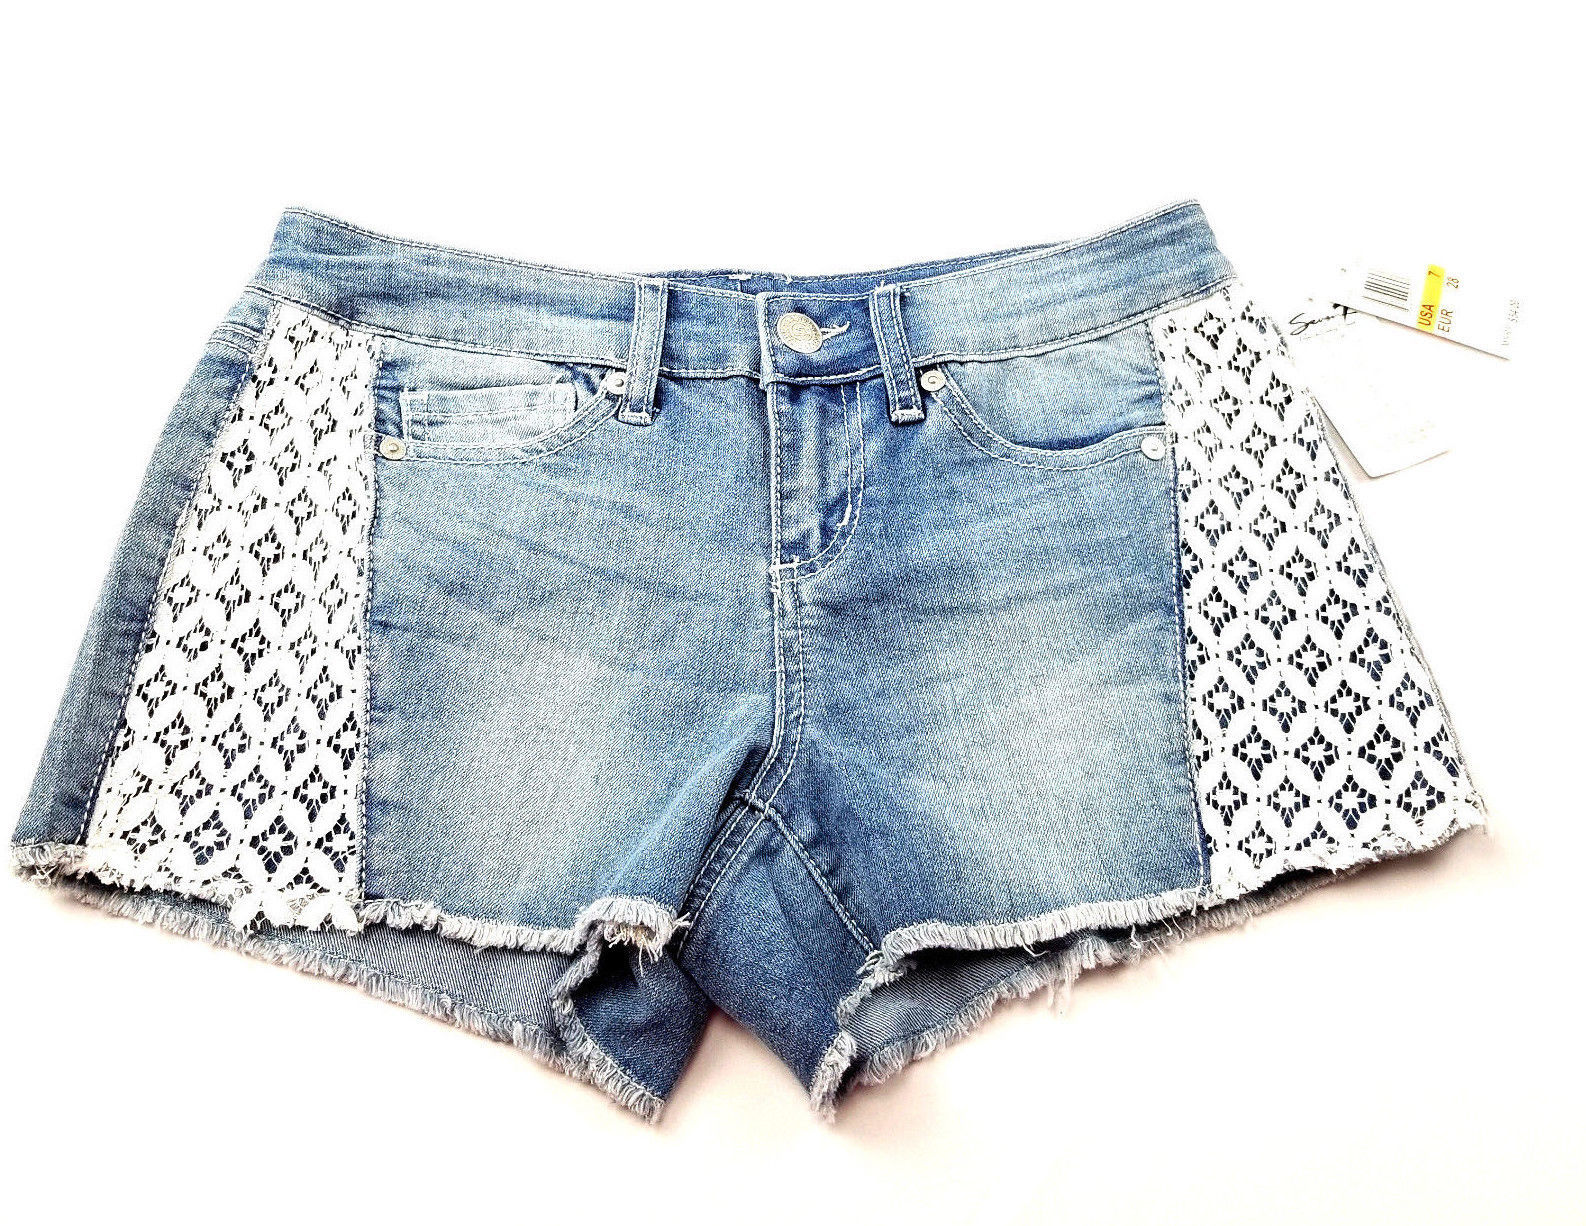 Seven7 Womens Jeans Shorts Size 7 Lace Detail NEW